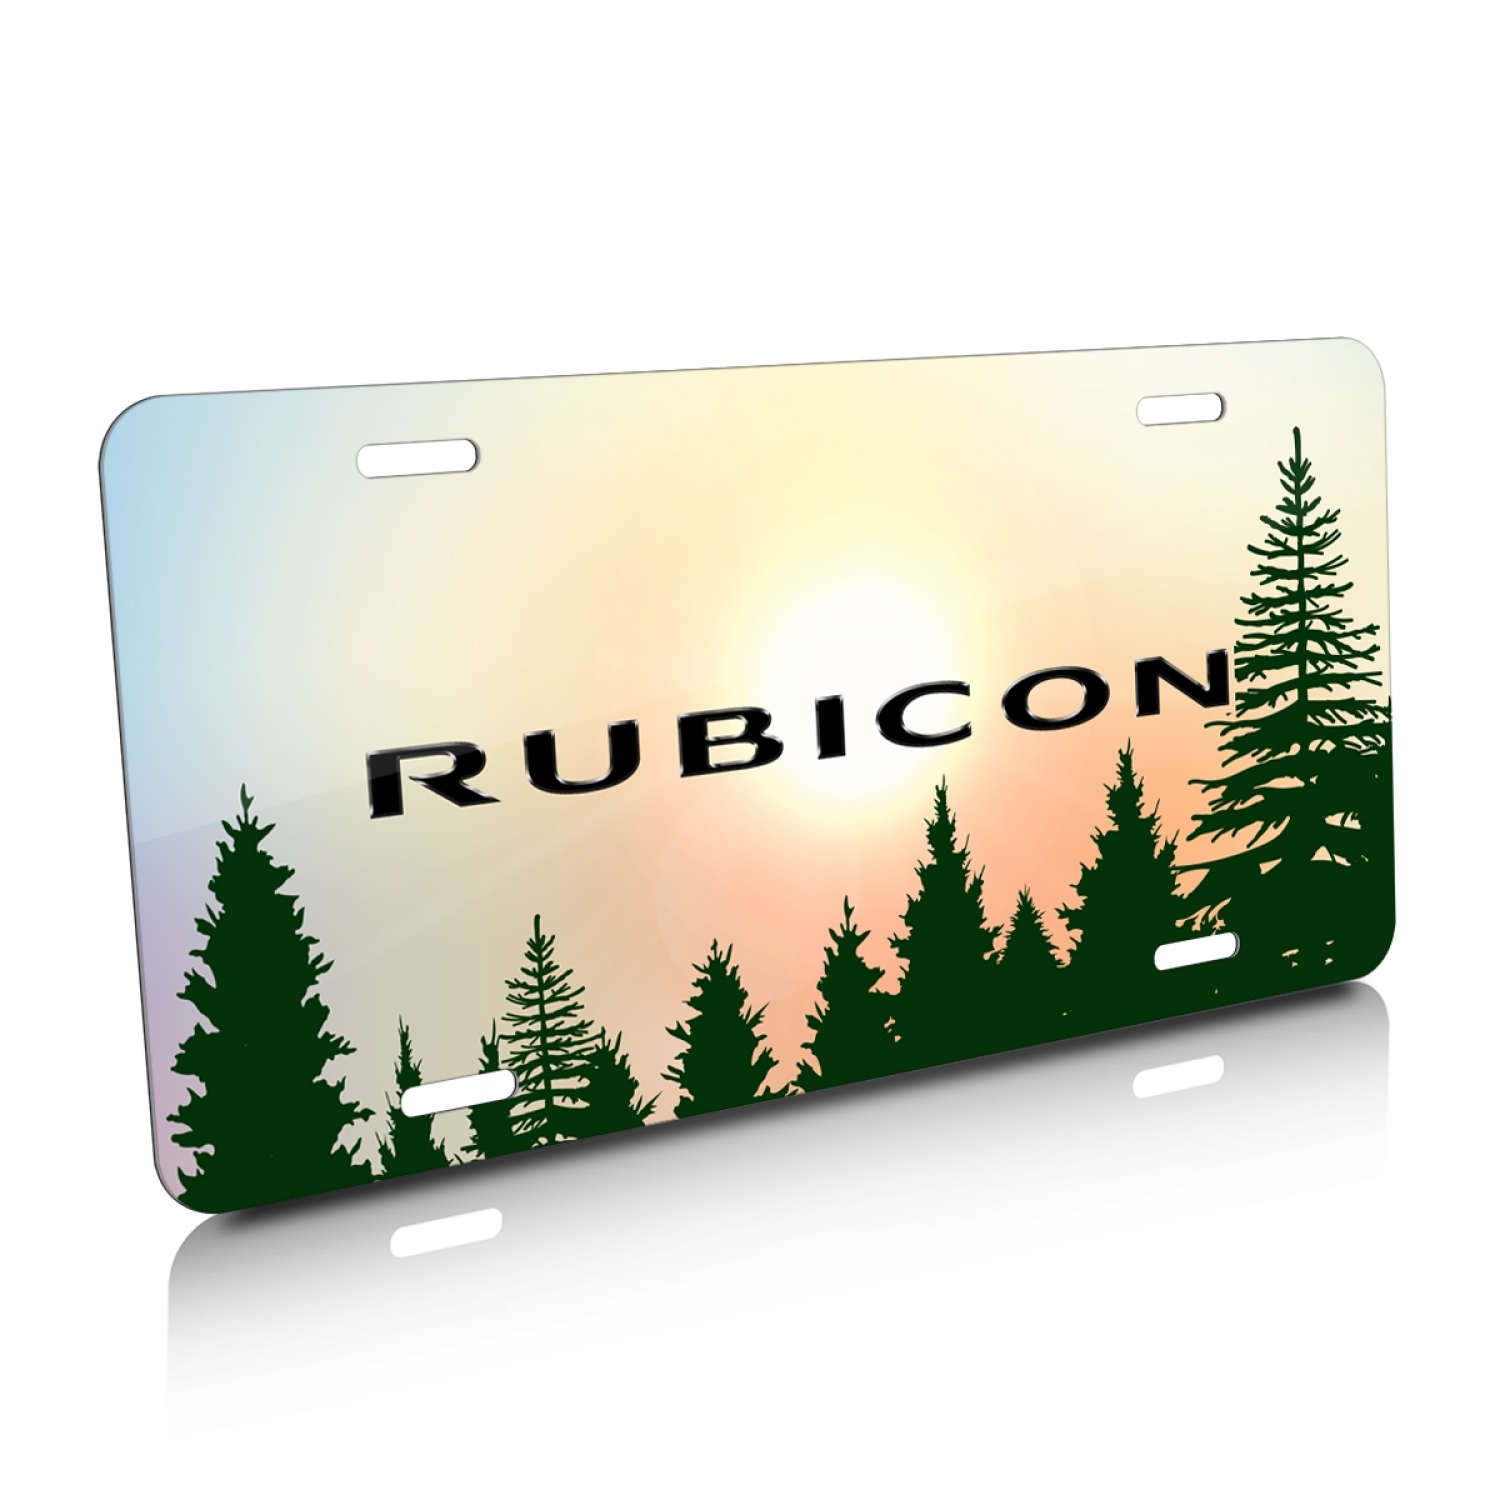 Jeep Rubicon Green Forrest Sillhouette Graphic Aluminum License Plate